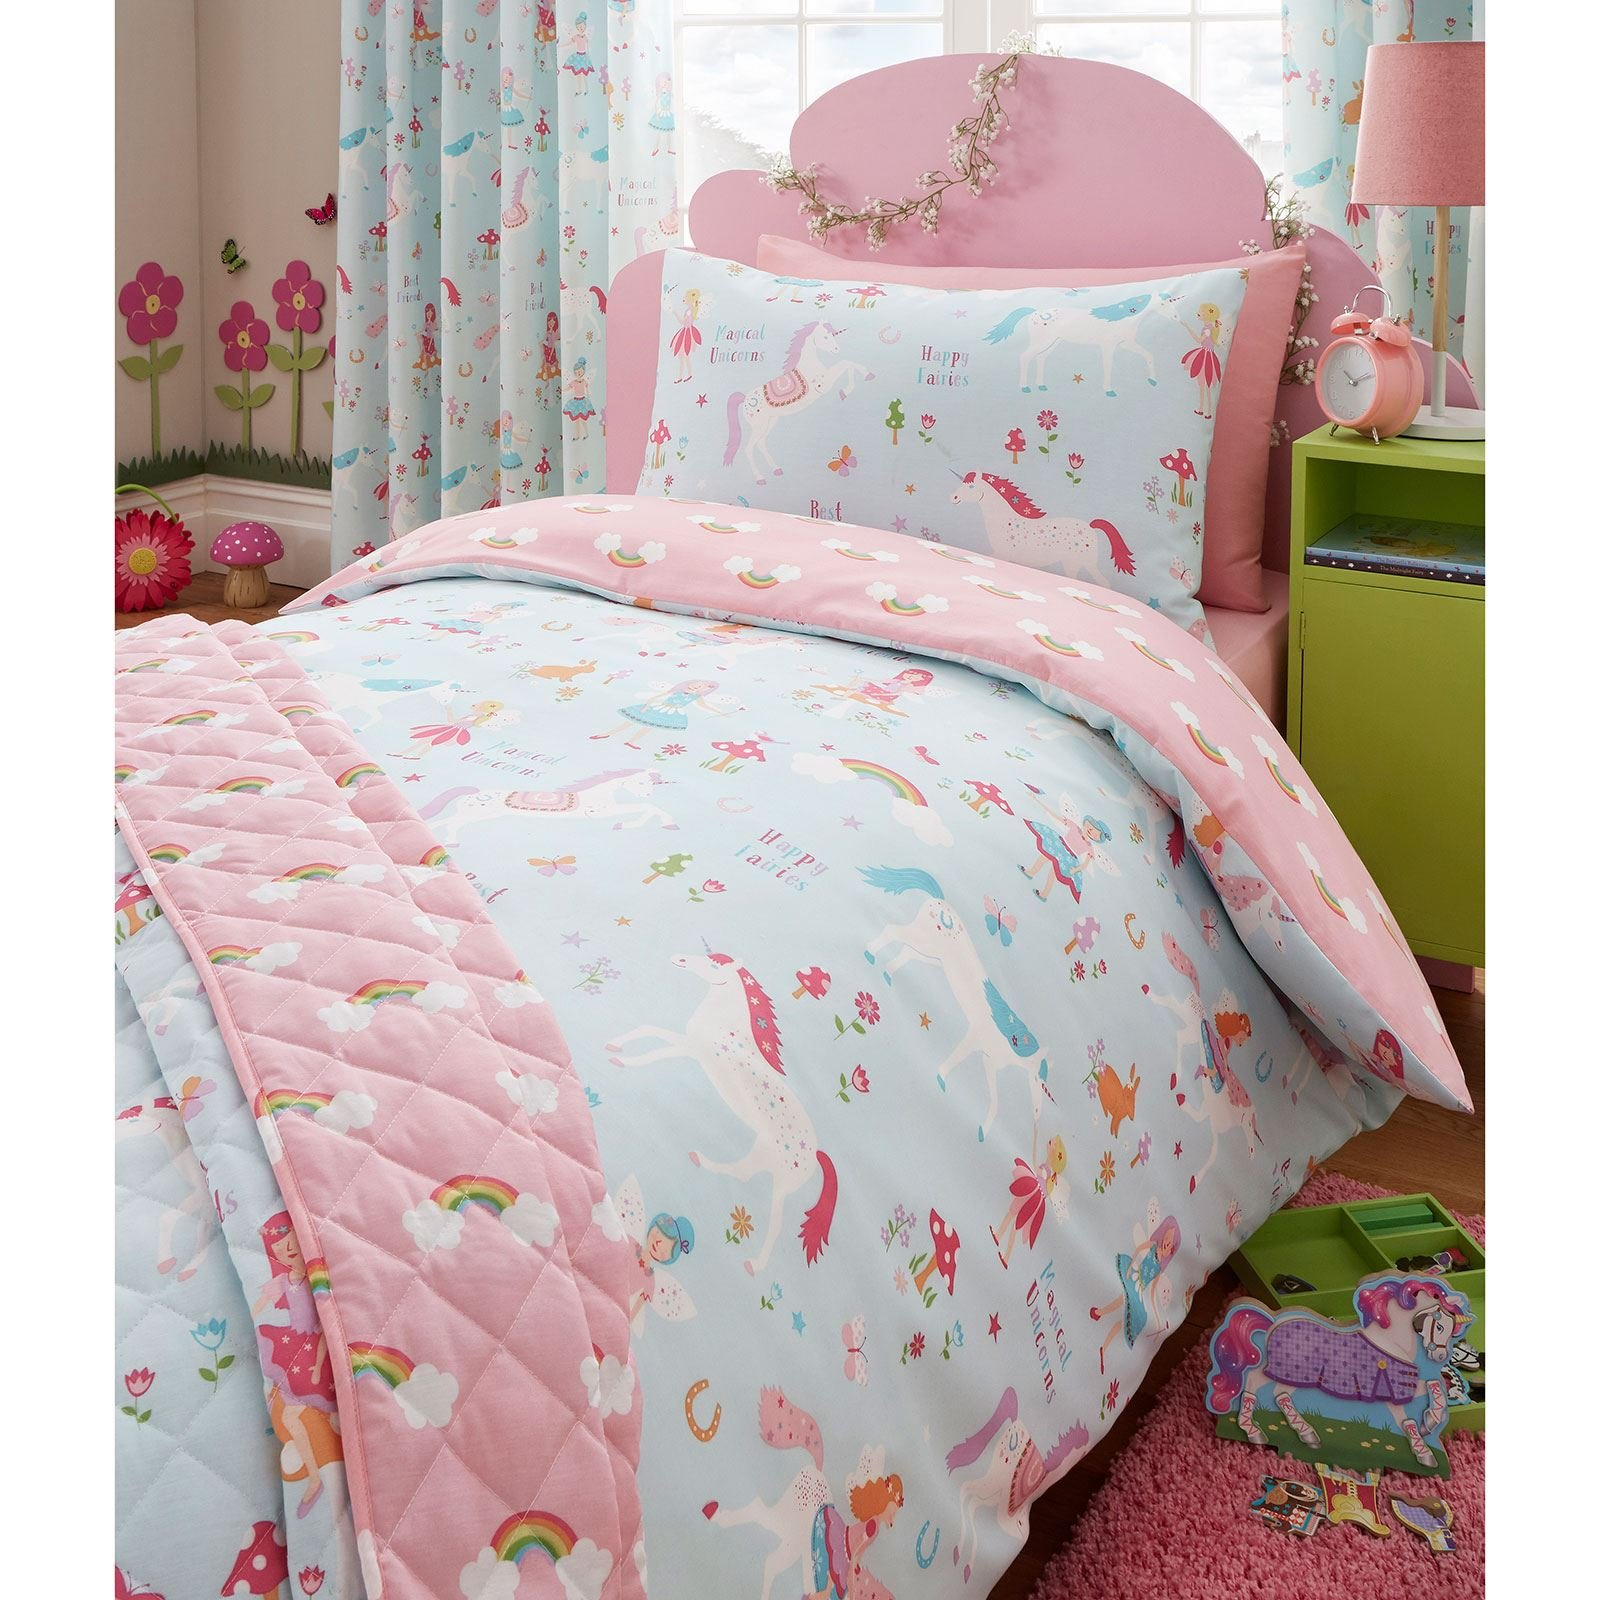 Magical Unicorn Single/US Twin Duvet Cover and Pillowcase Set